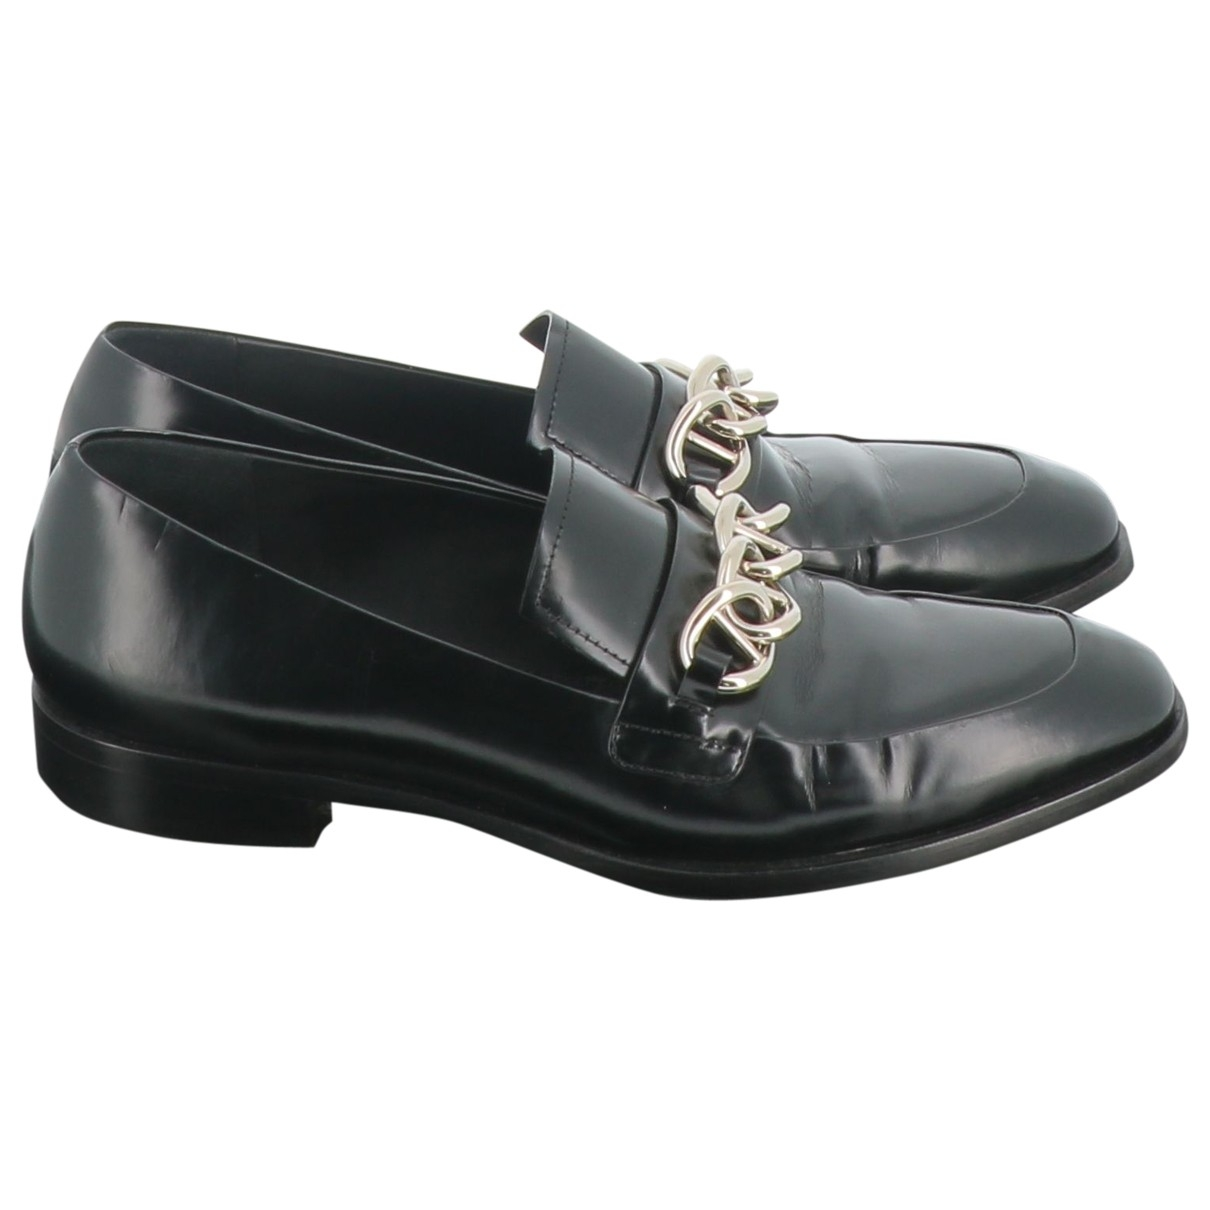 Prada \N Black Leather Flats for Women 38 EU